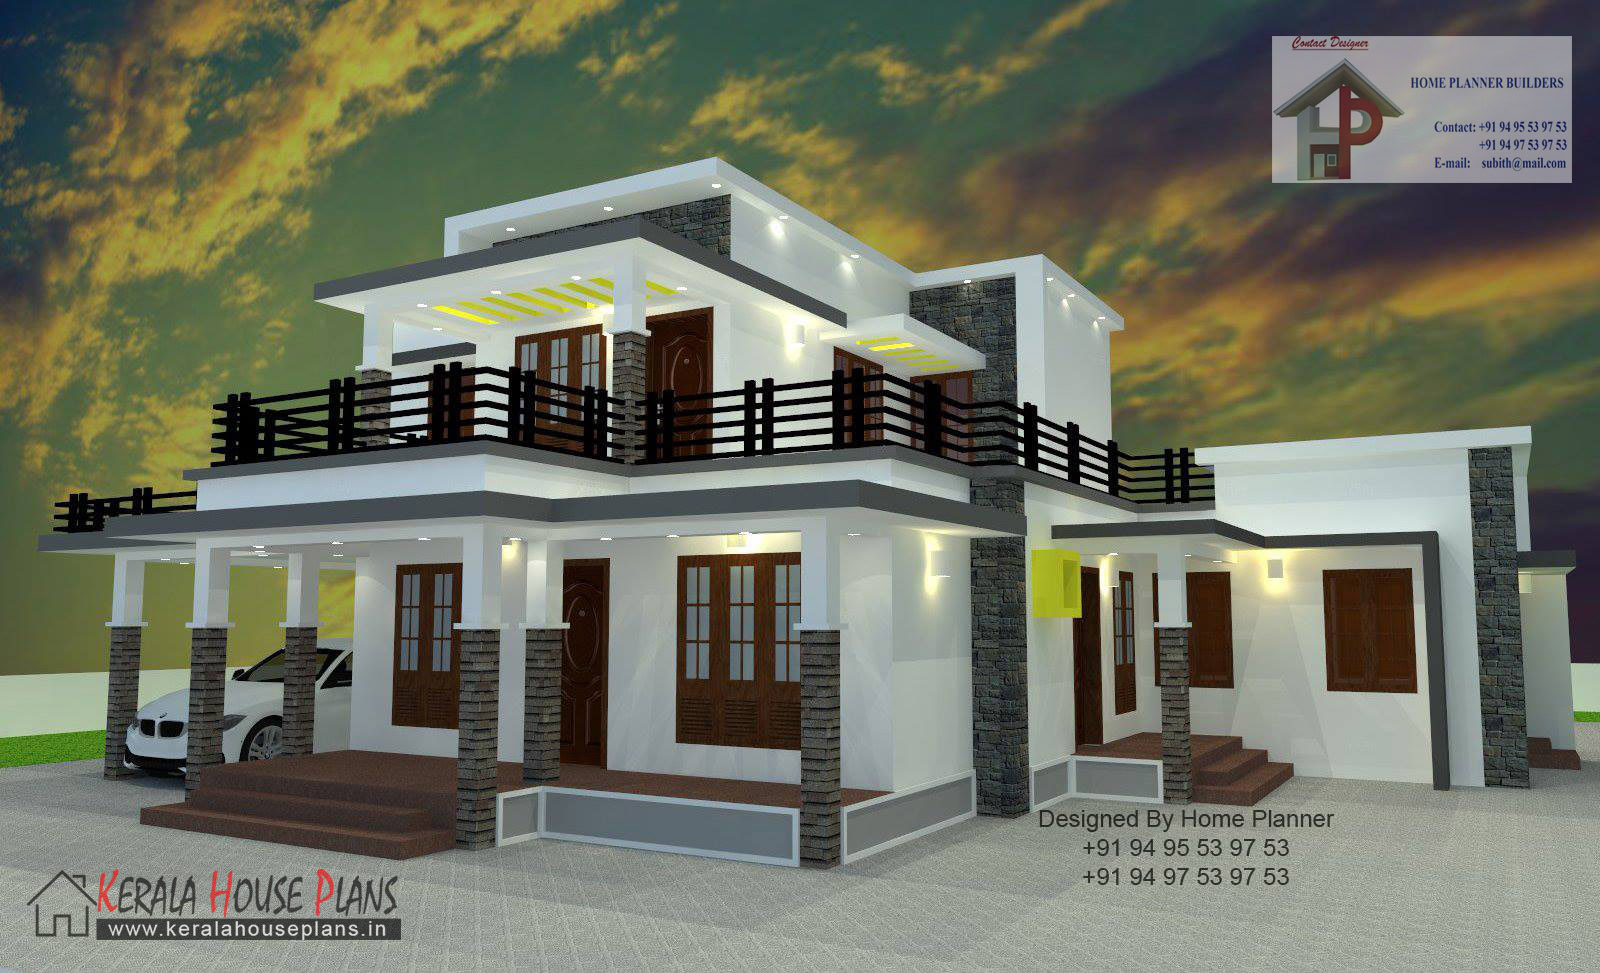 2000 sqft box type house kerala house plans designs for Kerala house plan images